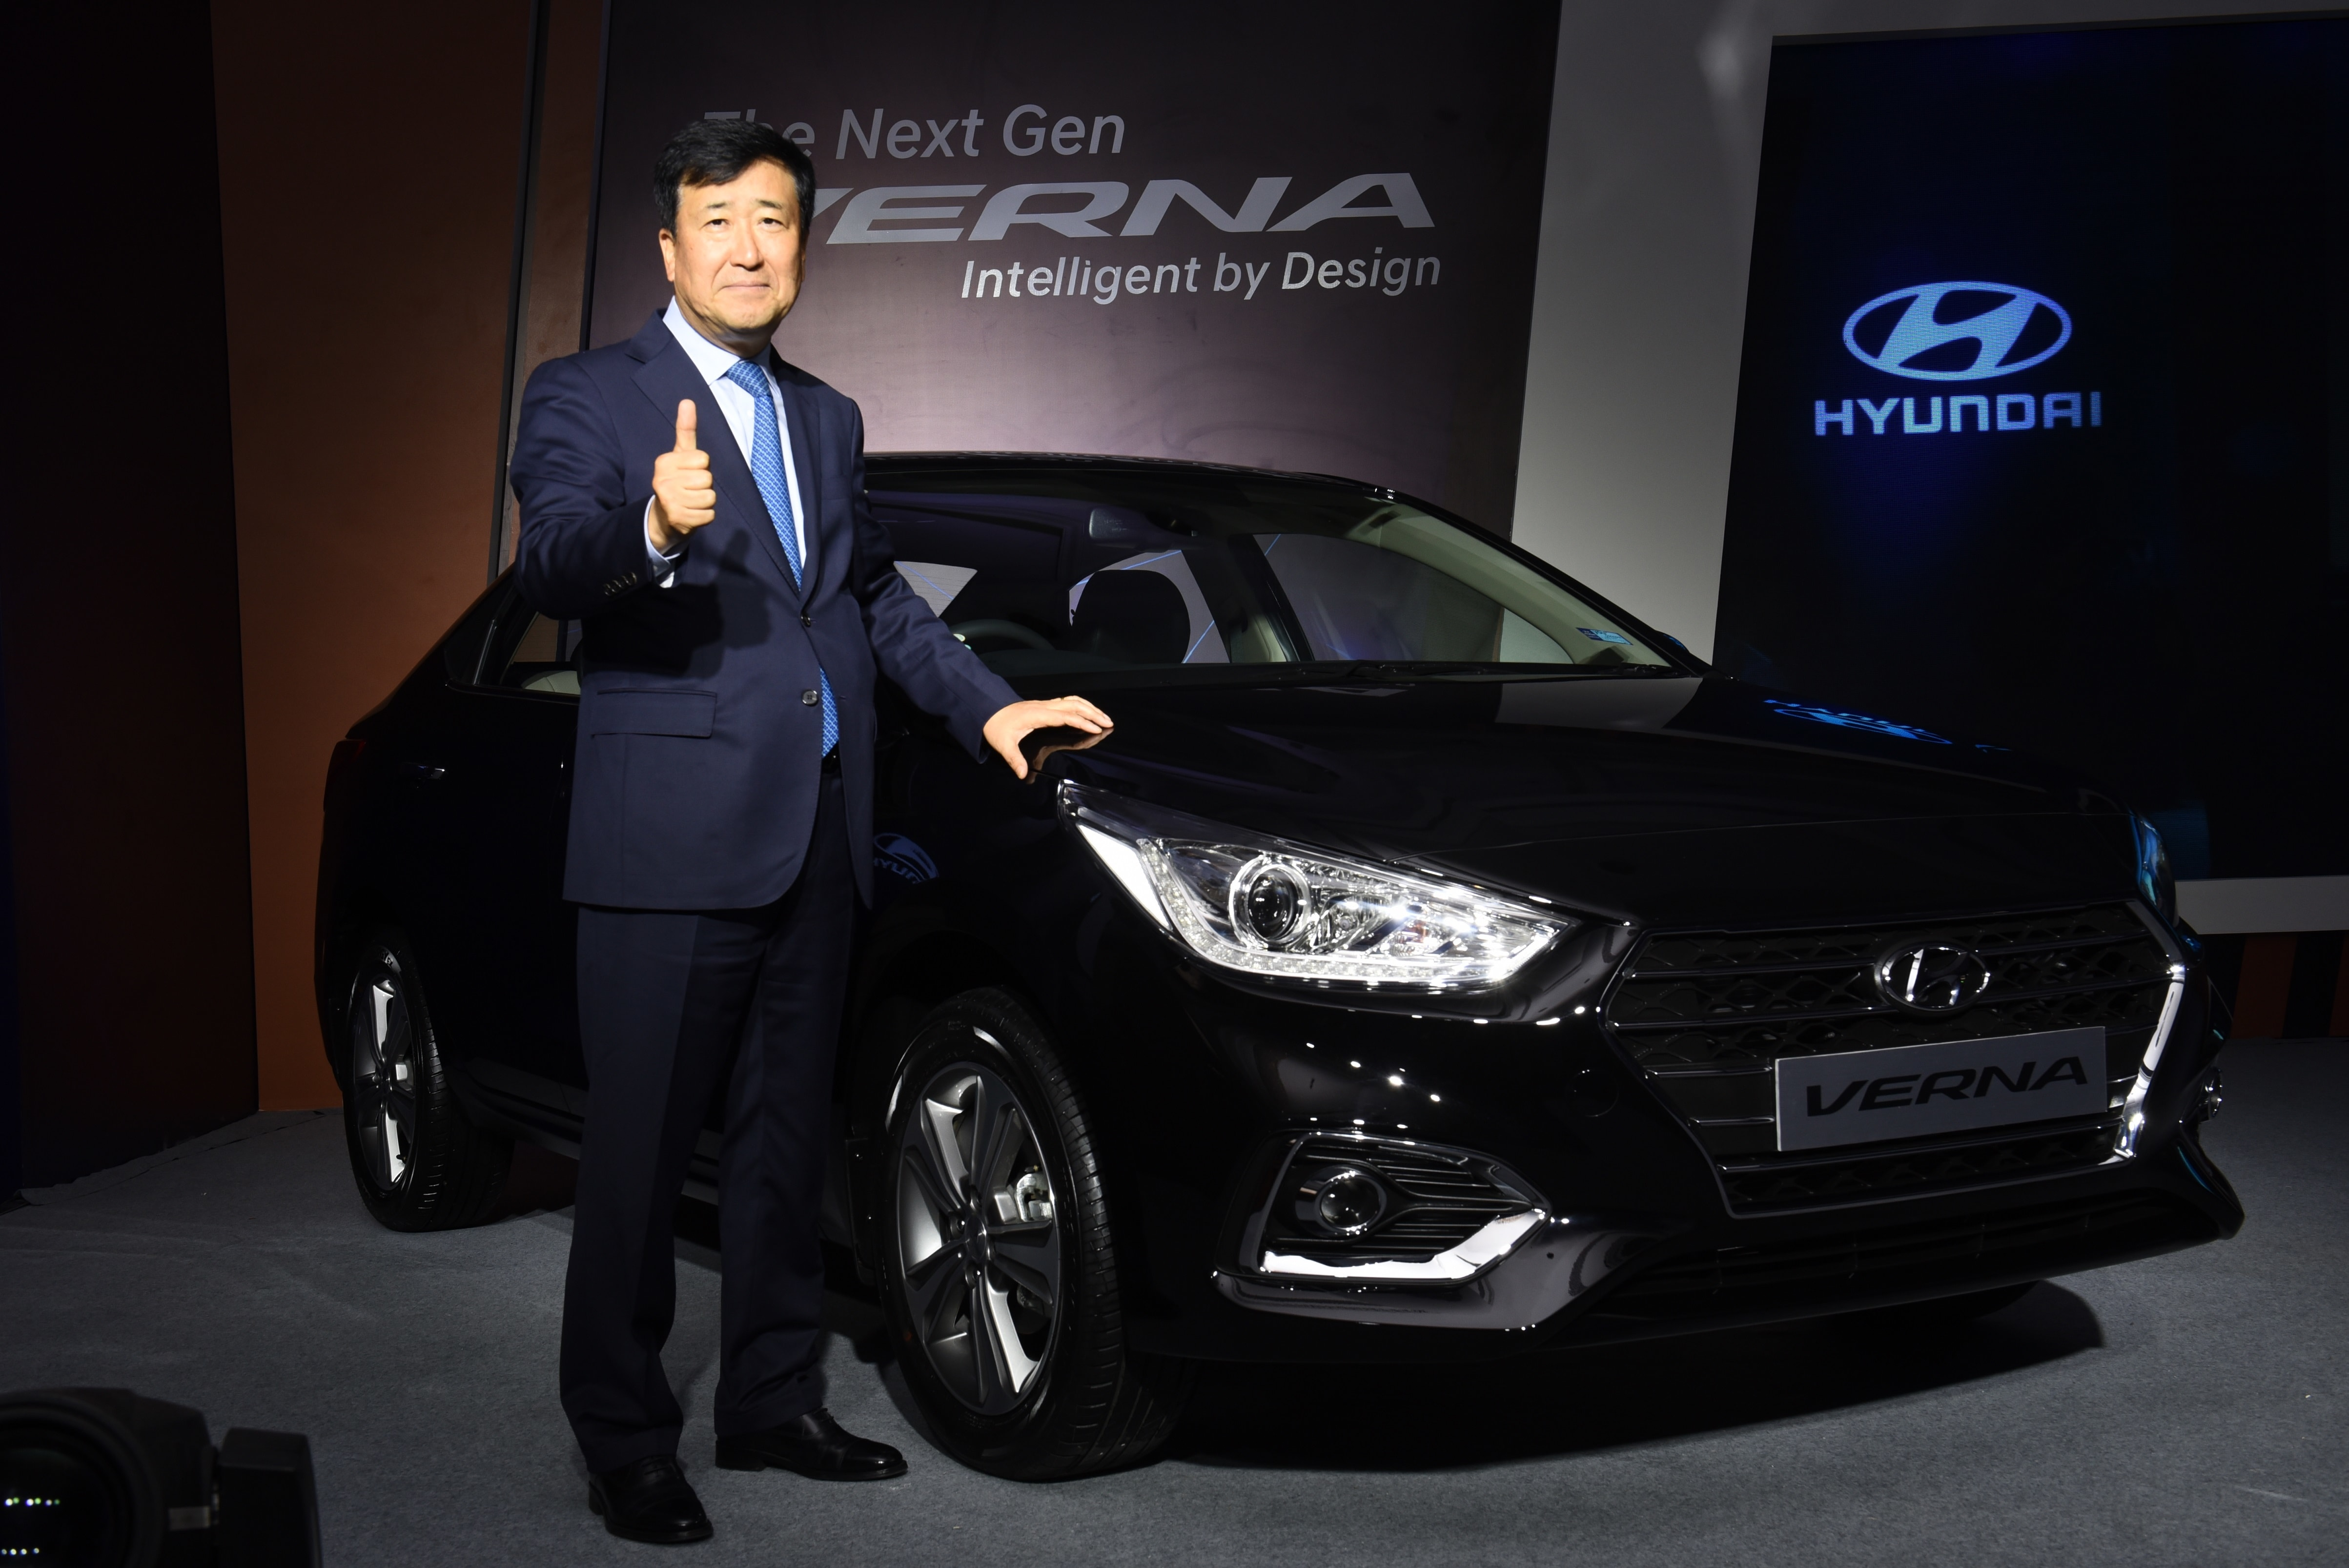 hyundai revs up for an electric debut, schedules launch of e-vehicle